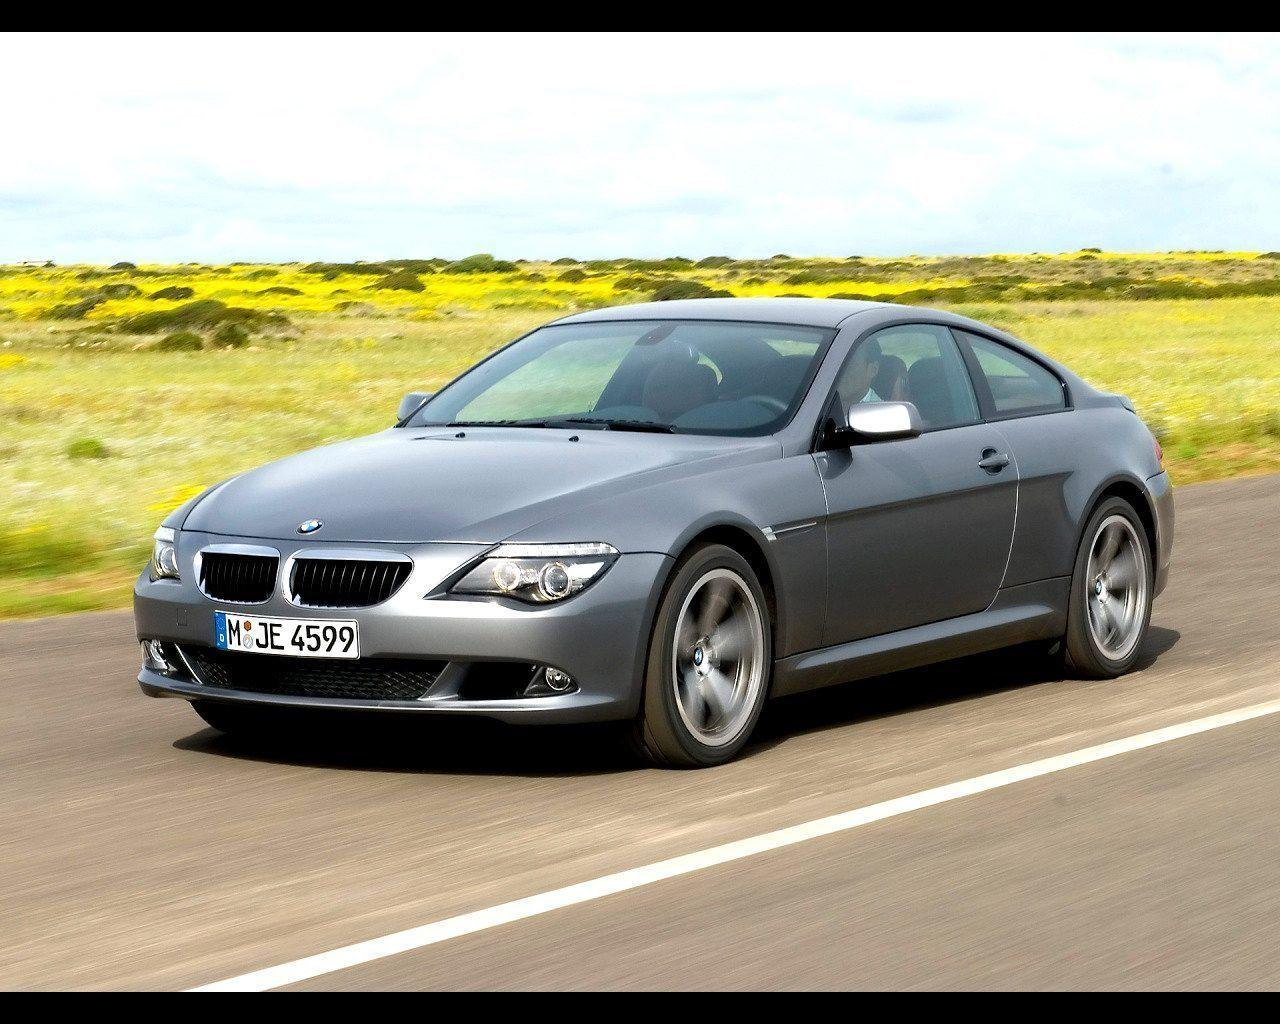 2008 BMW 6 Series Wallpaper 16 - 1280x1024